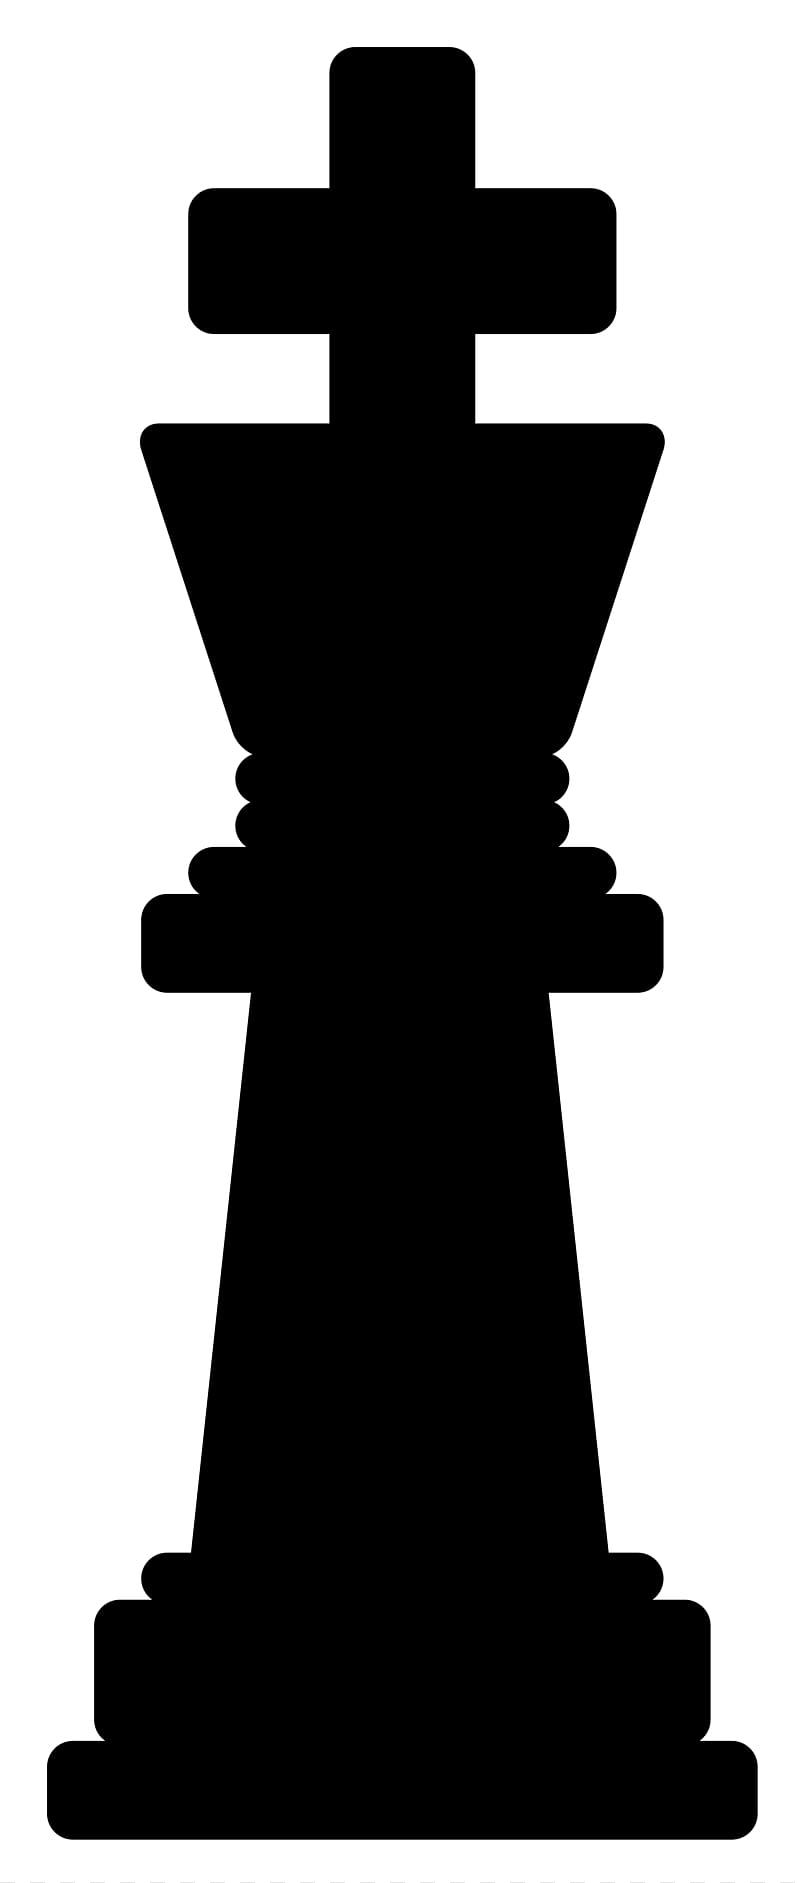 Chess piece King Queen , Chess Knight transparent background.